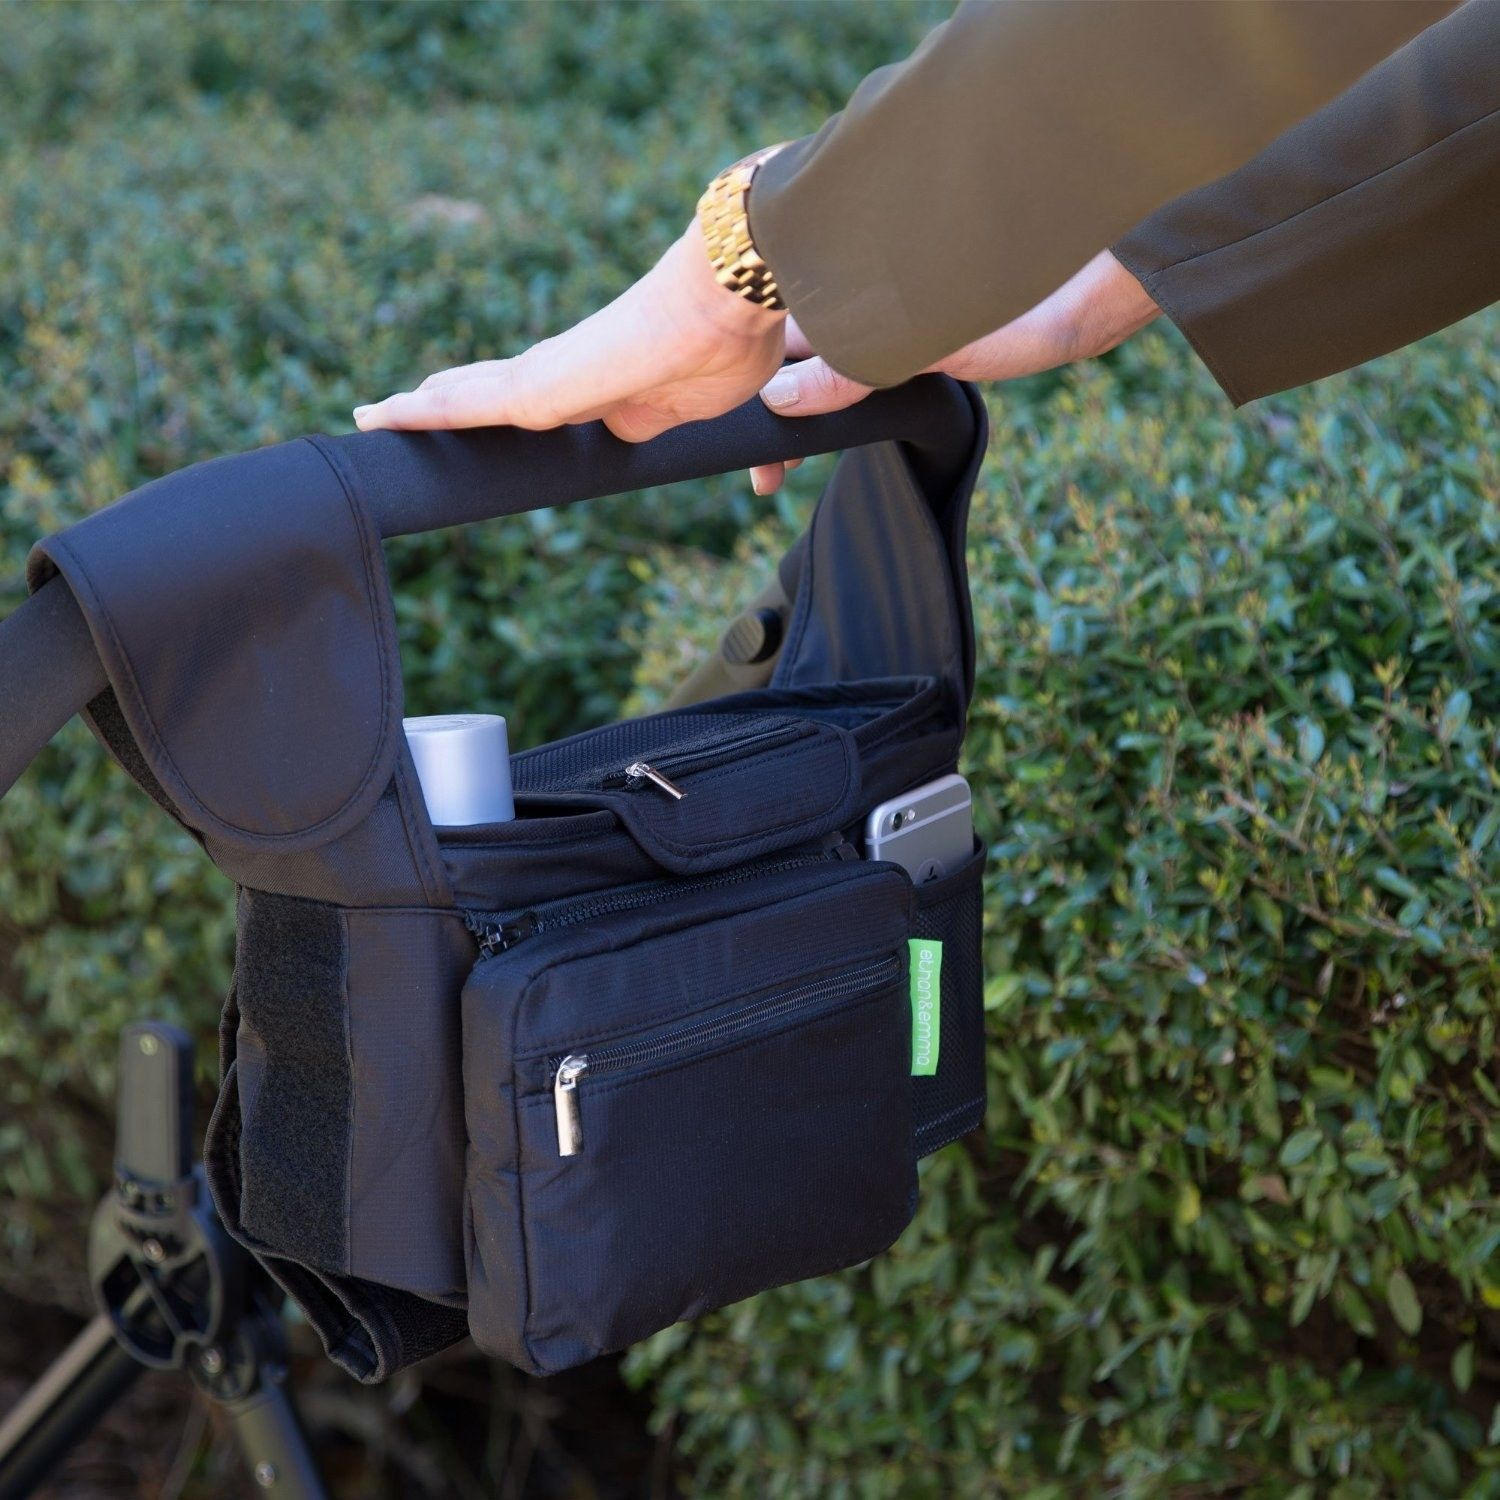 A stroller organizer that would make a perfect baby